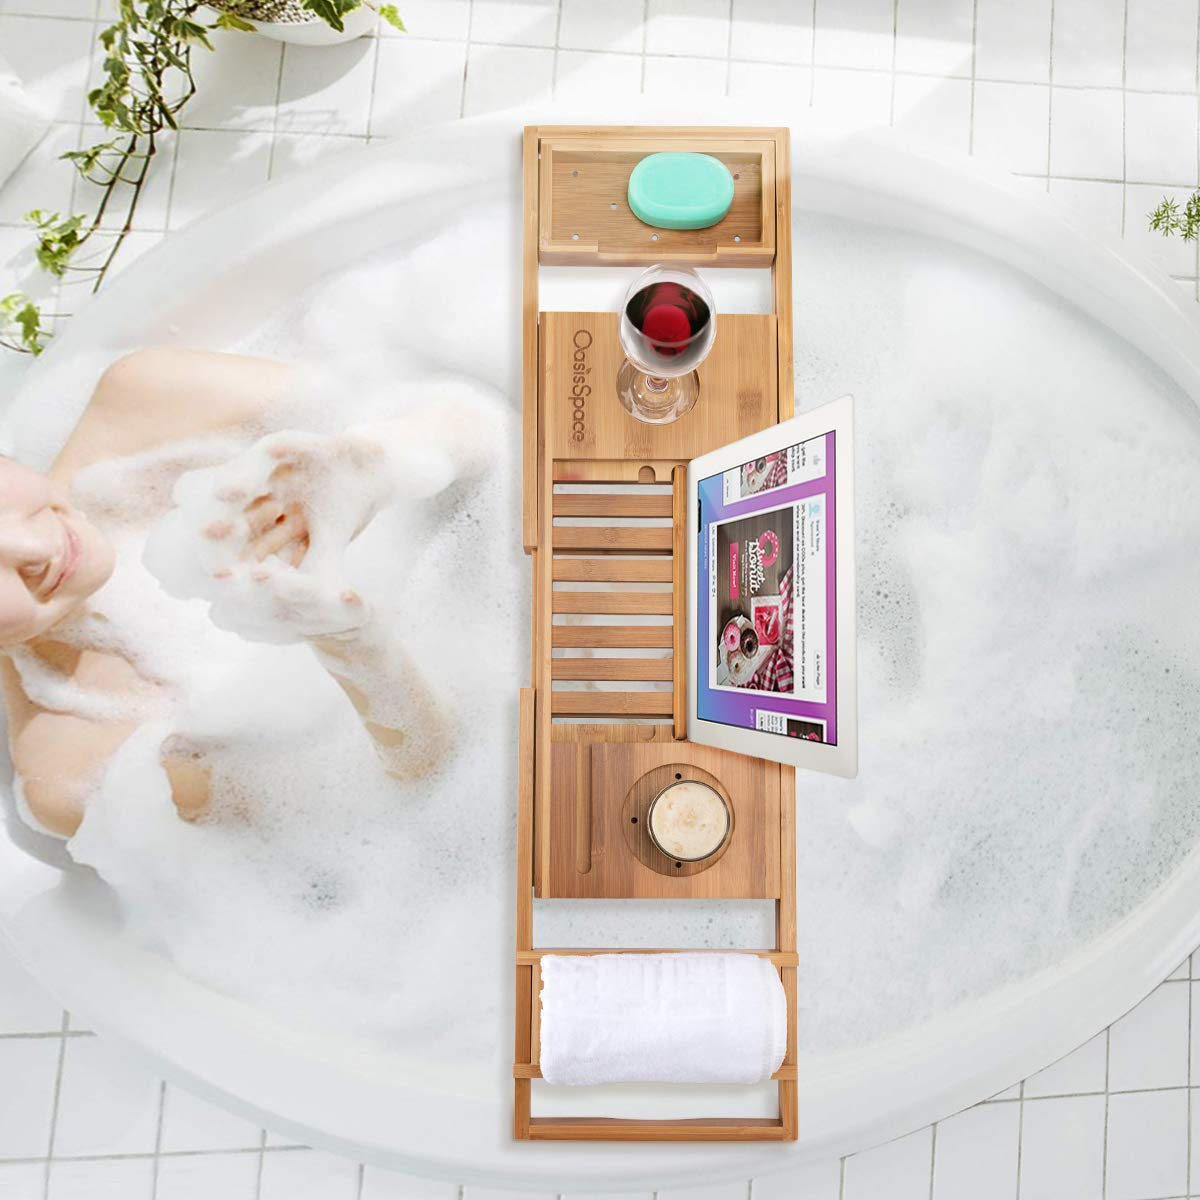 OasisSpace Bathtub Tray, Bamboo Bathtub Caddy Tray Adjustable Bath Table Extending Non Slip Sides, Fits Any Tub by OasisSpace